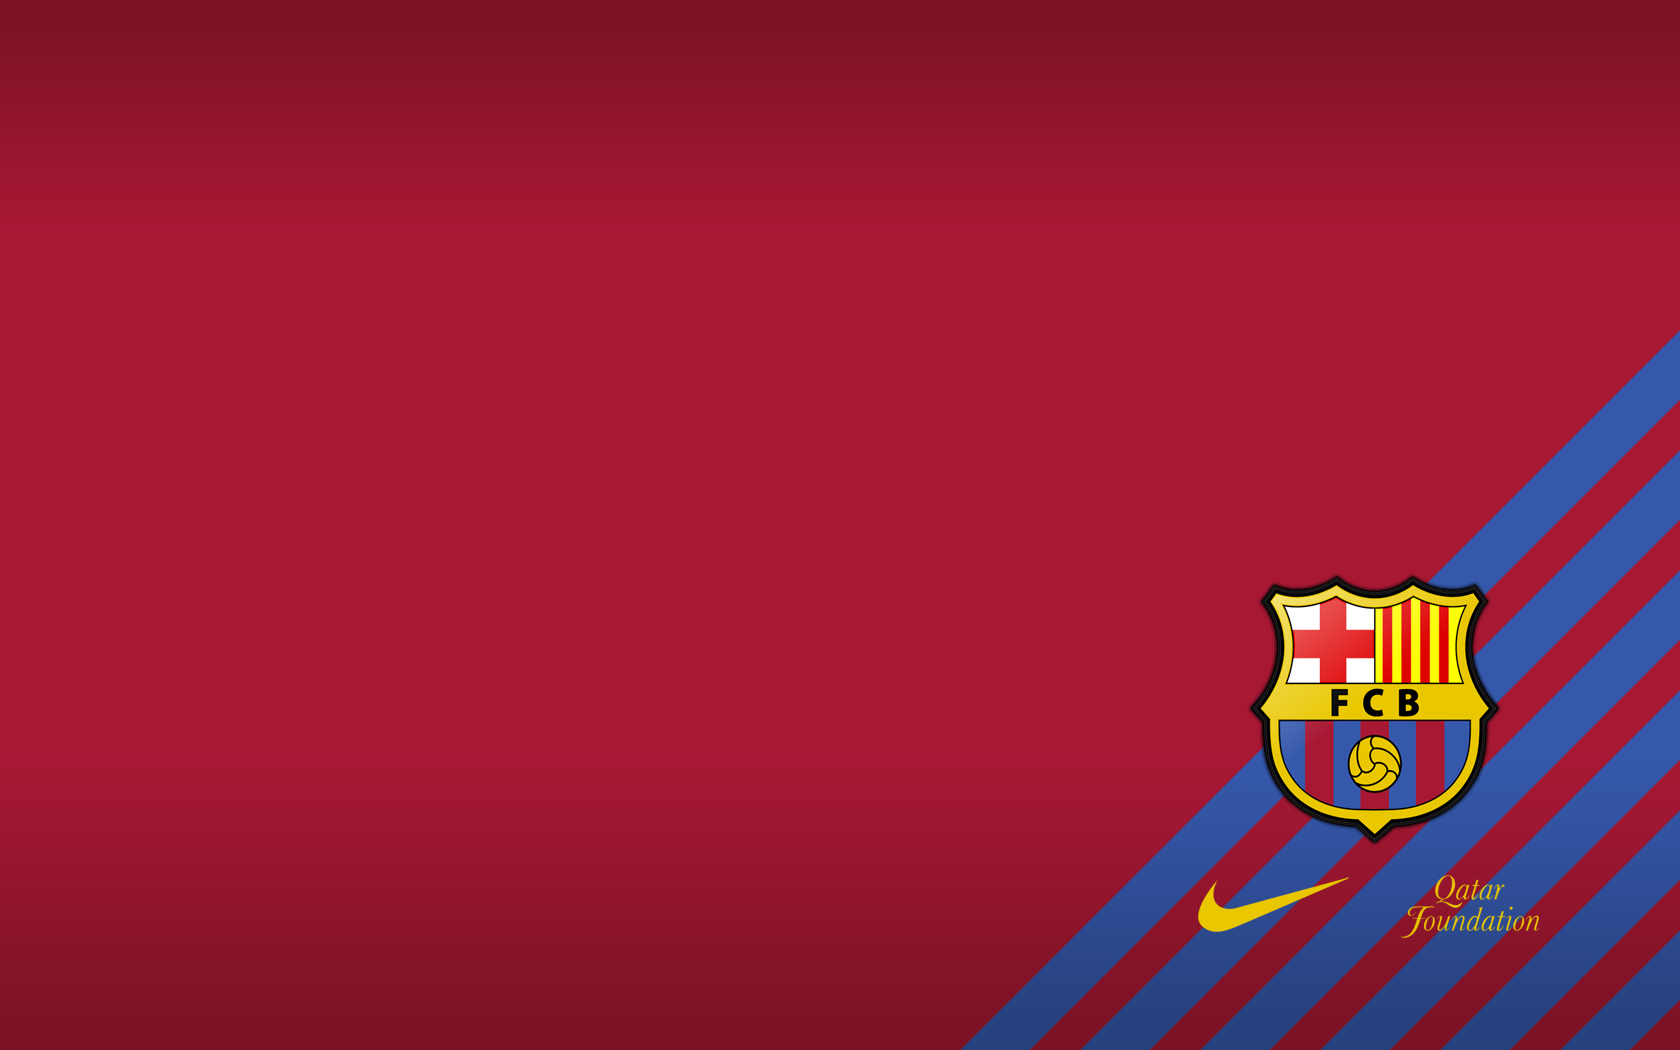 fc barcelona background 106320 hd wallpaper backgrounds download fc barcelona background 106320 hd